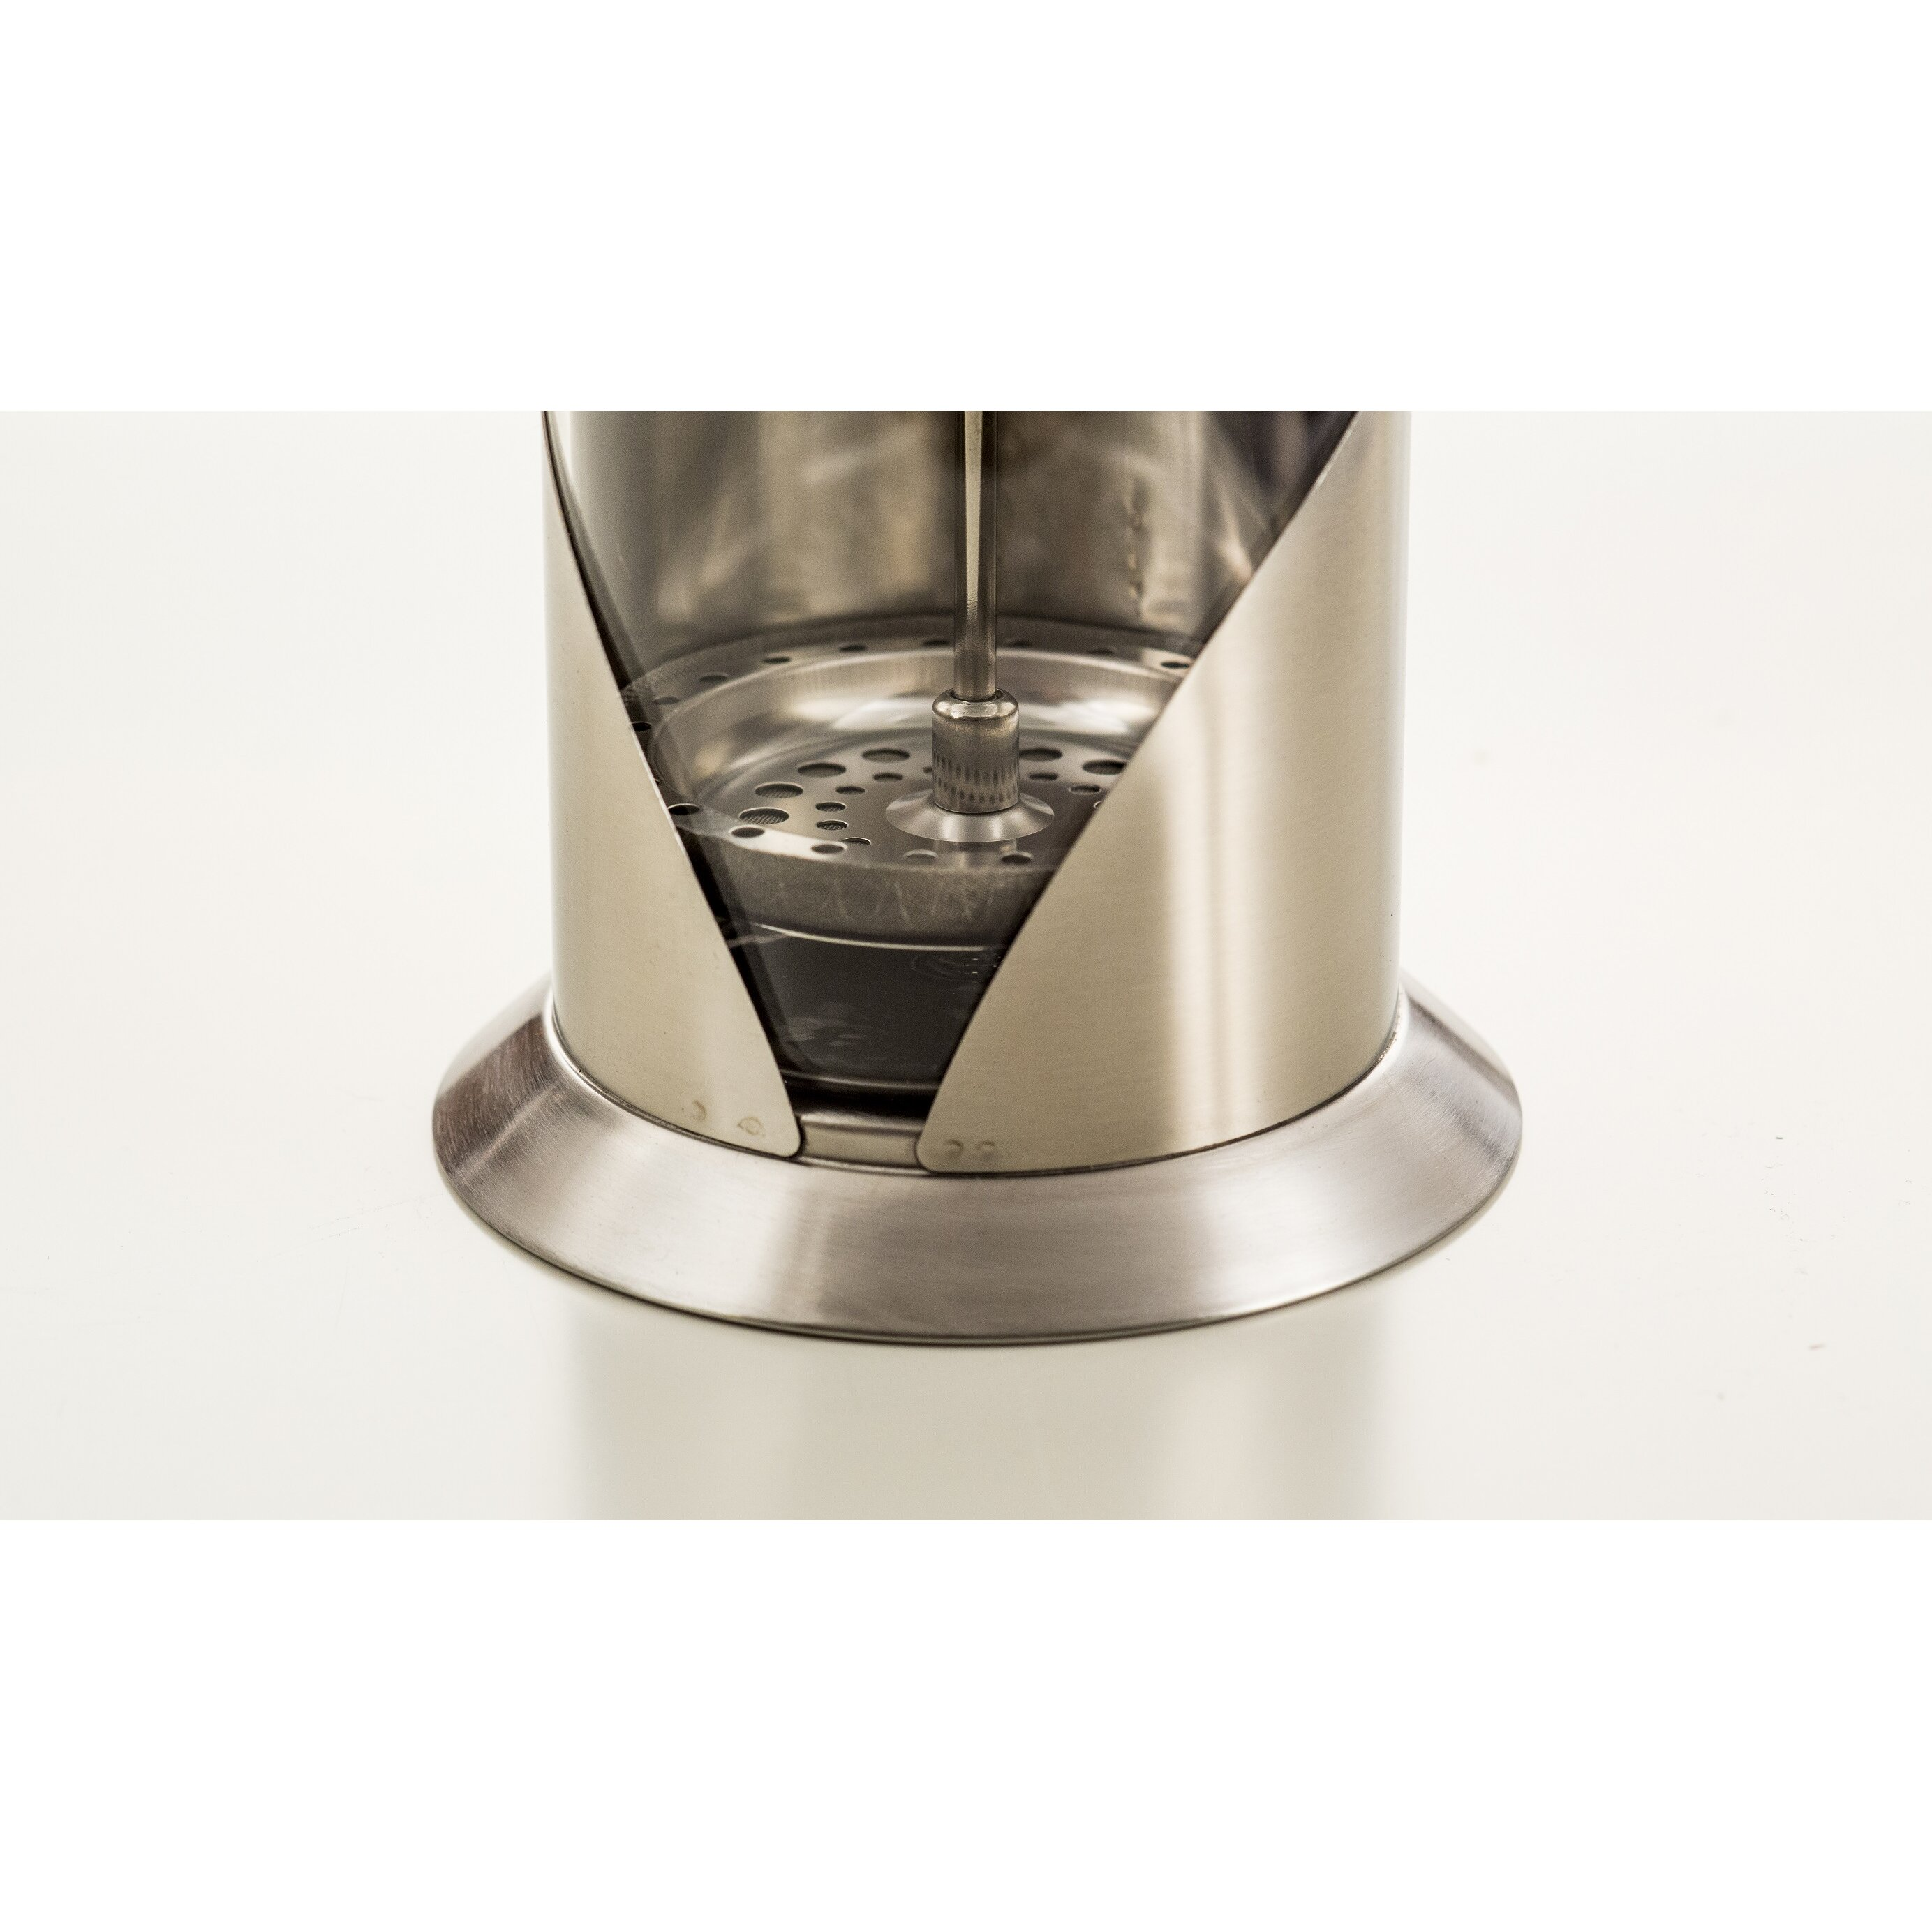 Ovente French Press Coffee Maker : Ovente Leaf French Press Coffee Maker & Reviews Wayfair